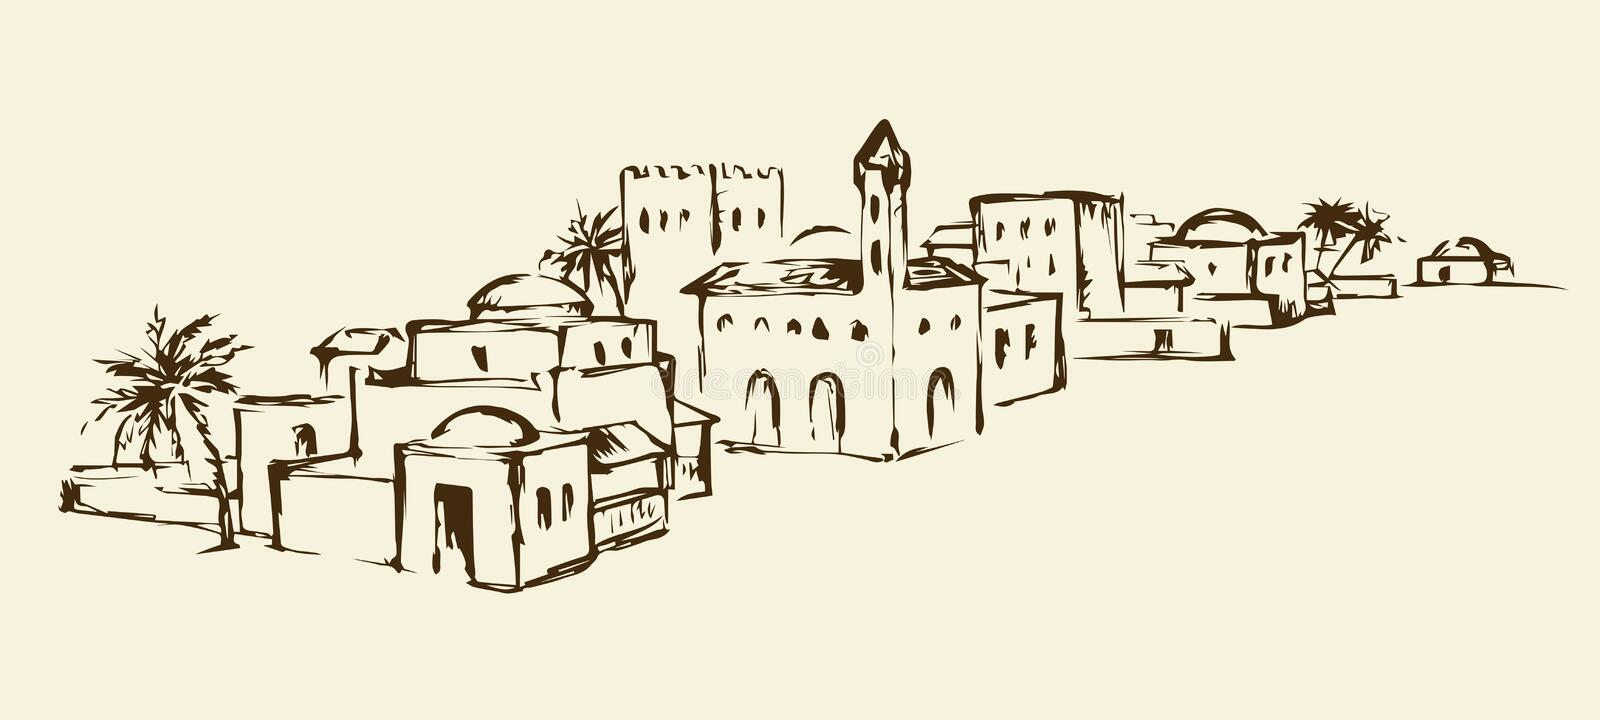 Old eastern city. Vector drawing. Arhaic eastern persian orient desert sand palm oasis view with stone fort wall and mosque. Outline ink hand drawn picture vector illustration